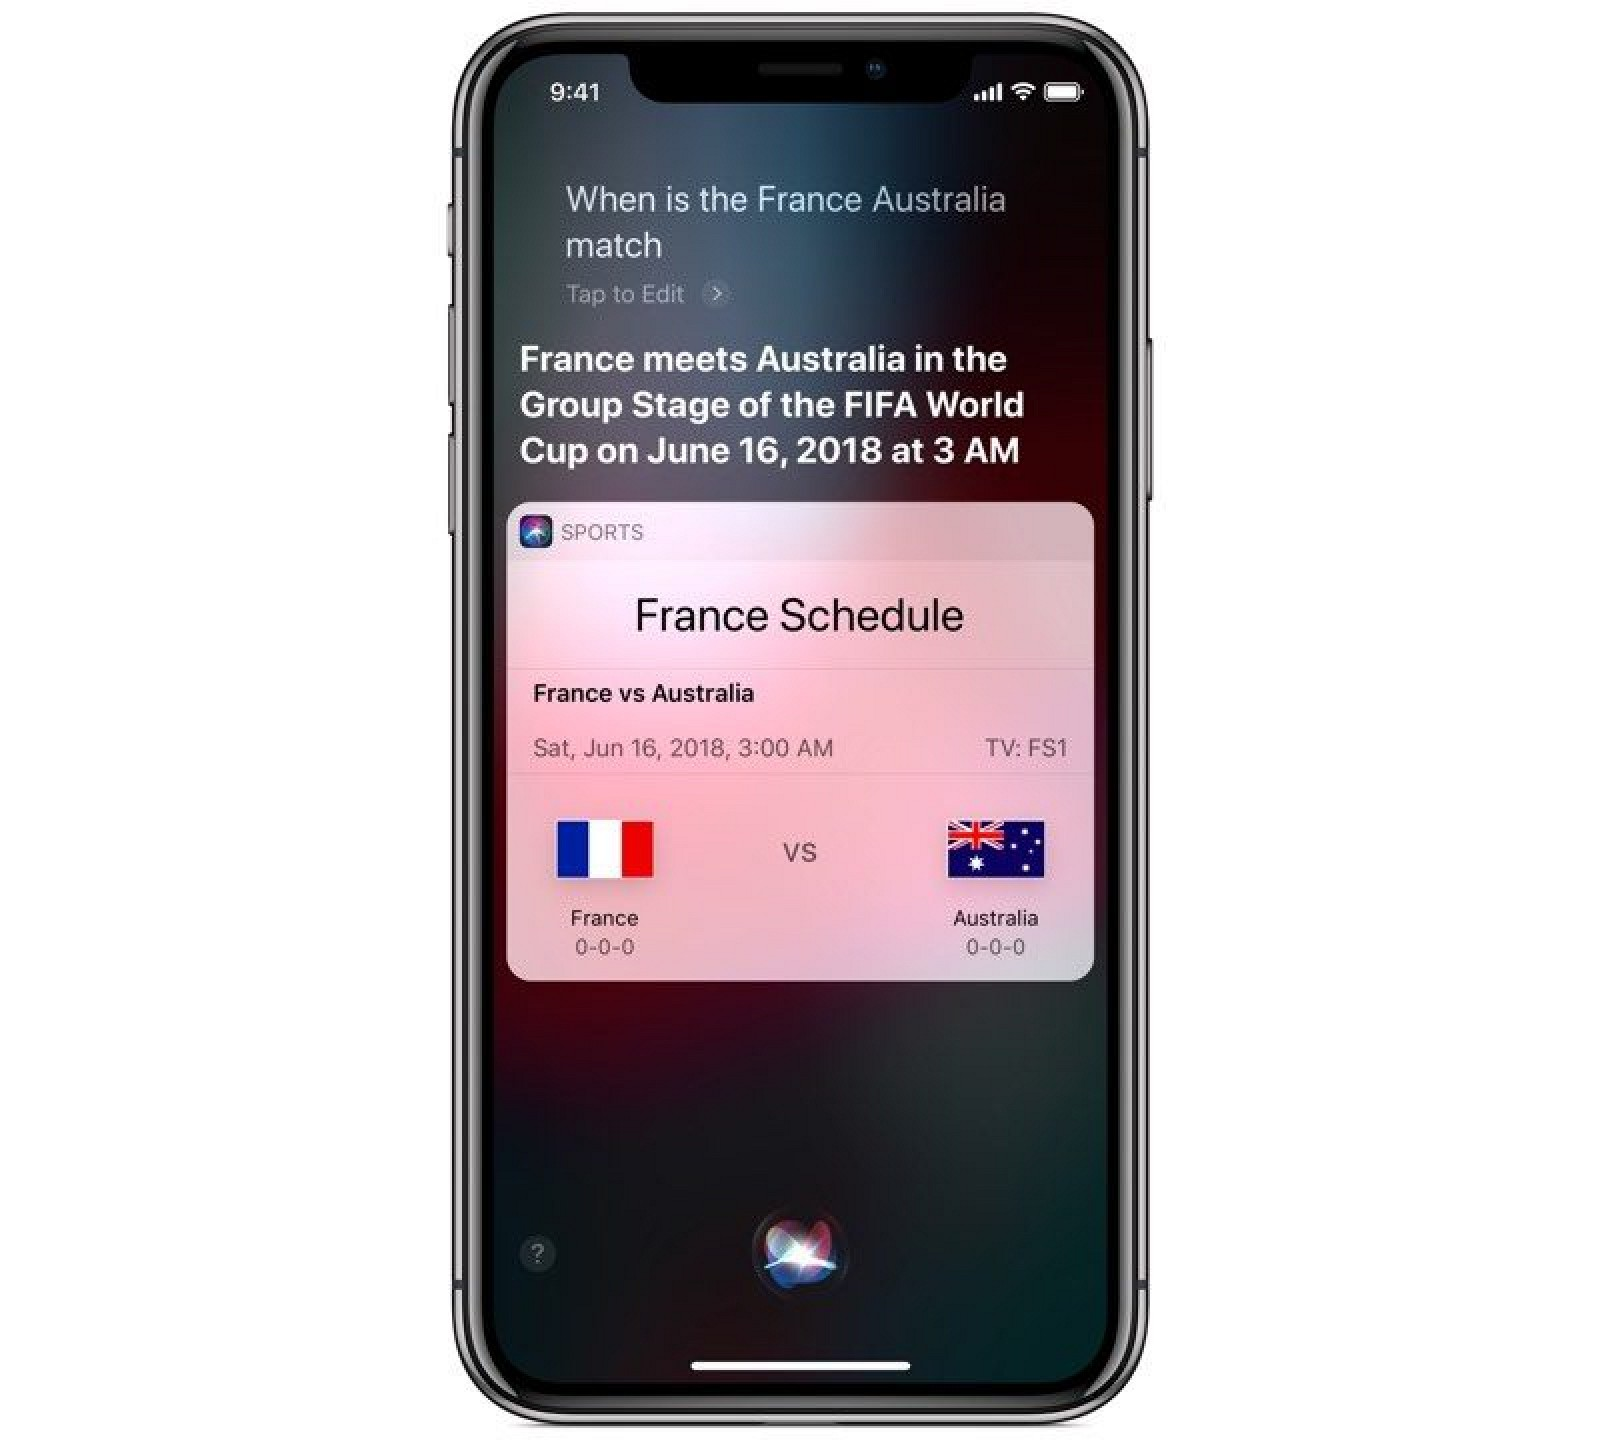 photo image Apple Announces World Cup Content Coming to Siri, Apple TV, News, App Store, iBooks and More